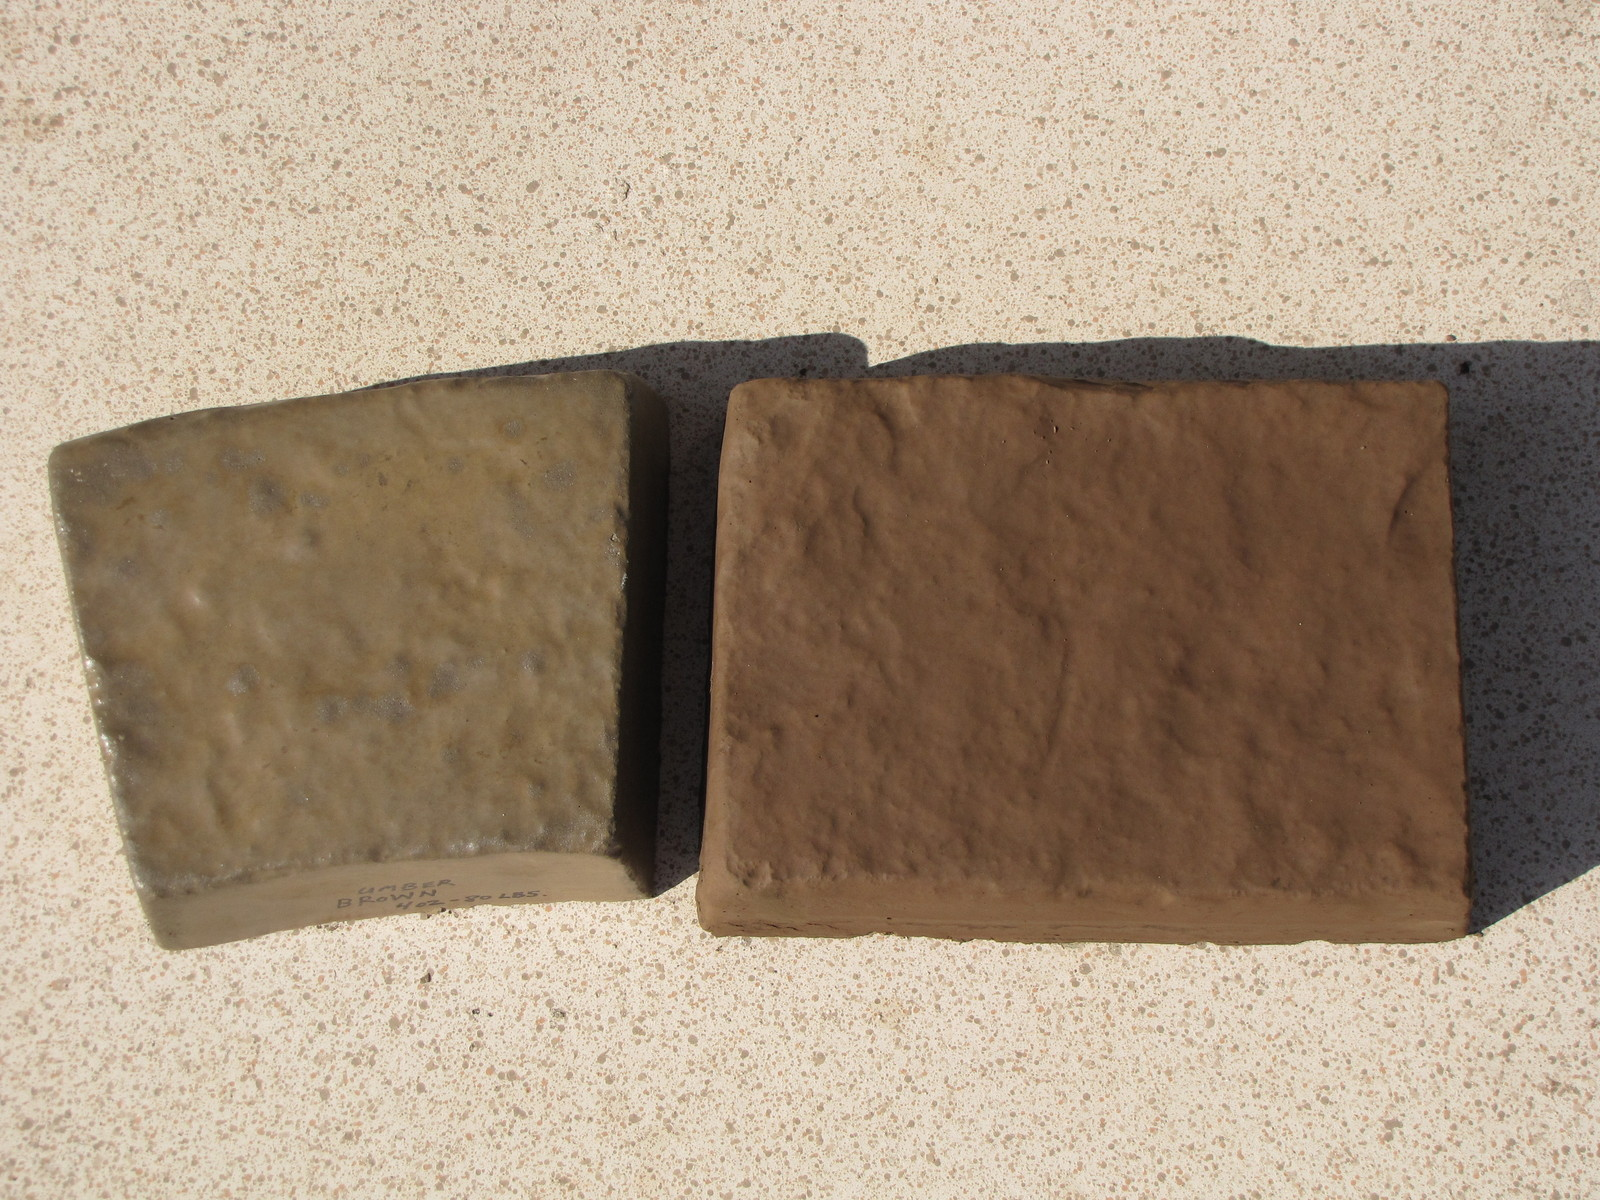 1 LB. CHOCOLATE BROWN POWDER TO COLOR CONCRETE, CEMENT, PLASTER, GROUT OR BRICKS